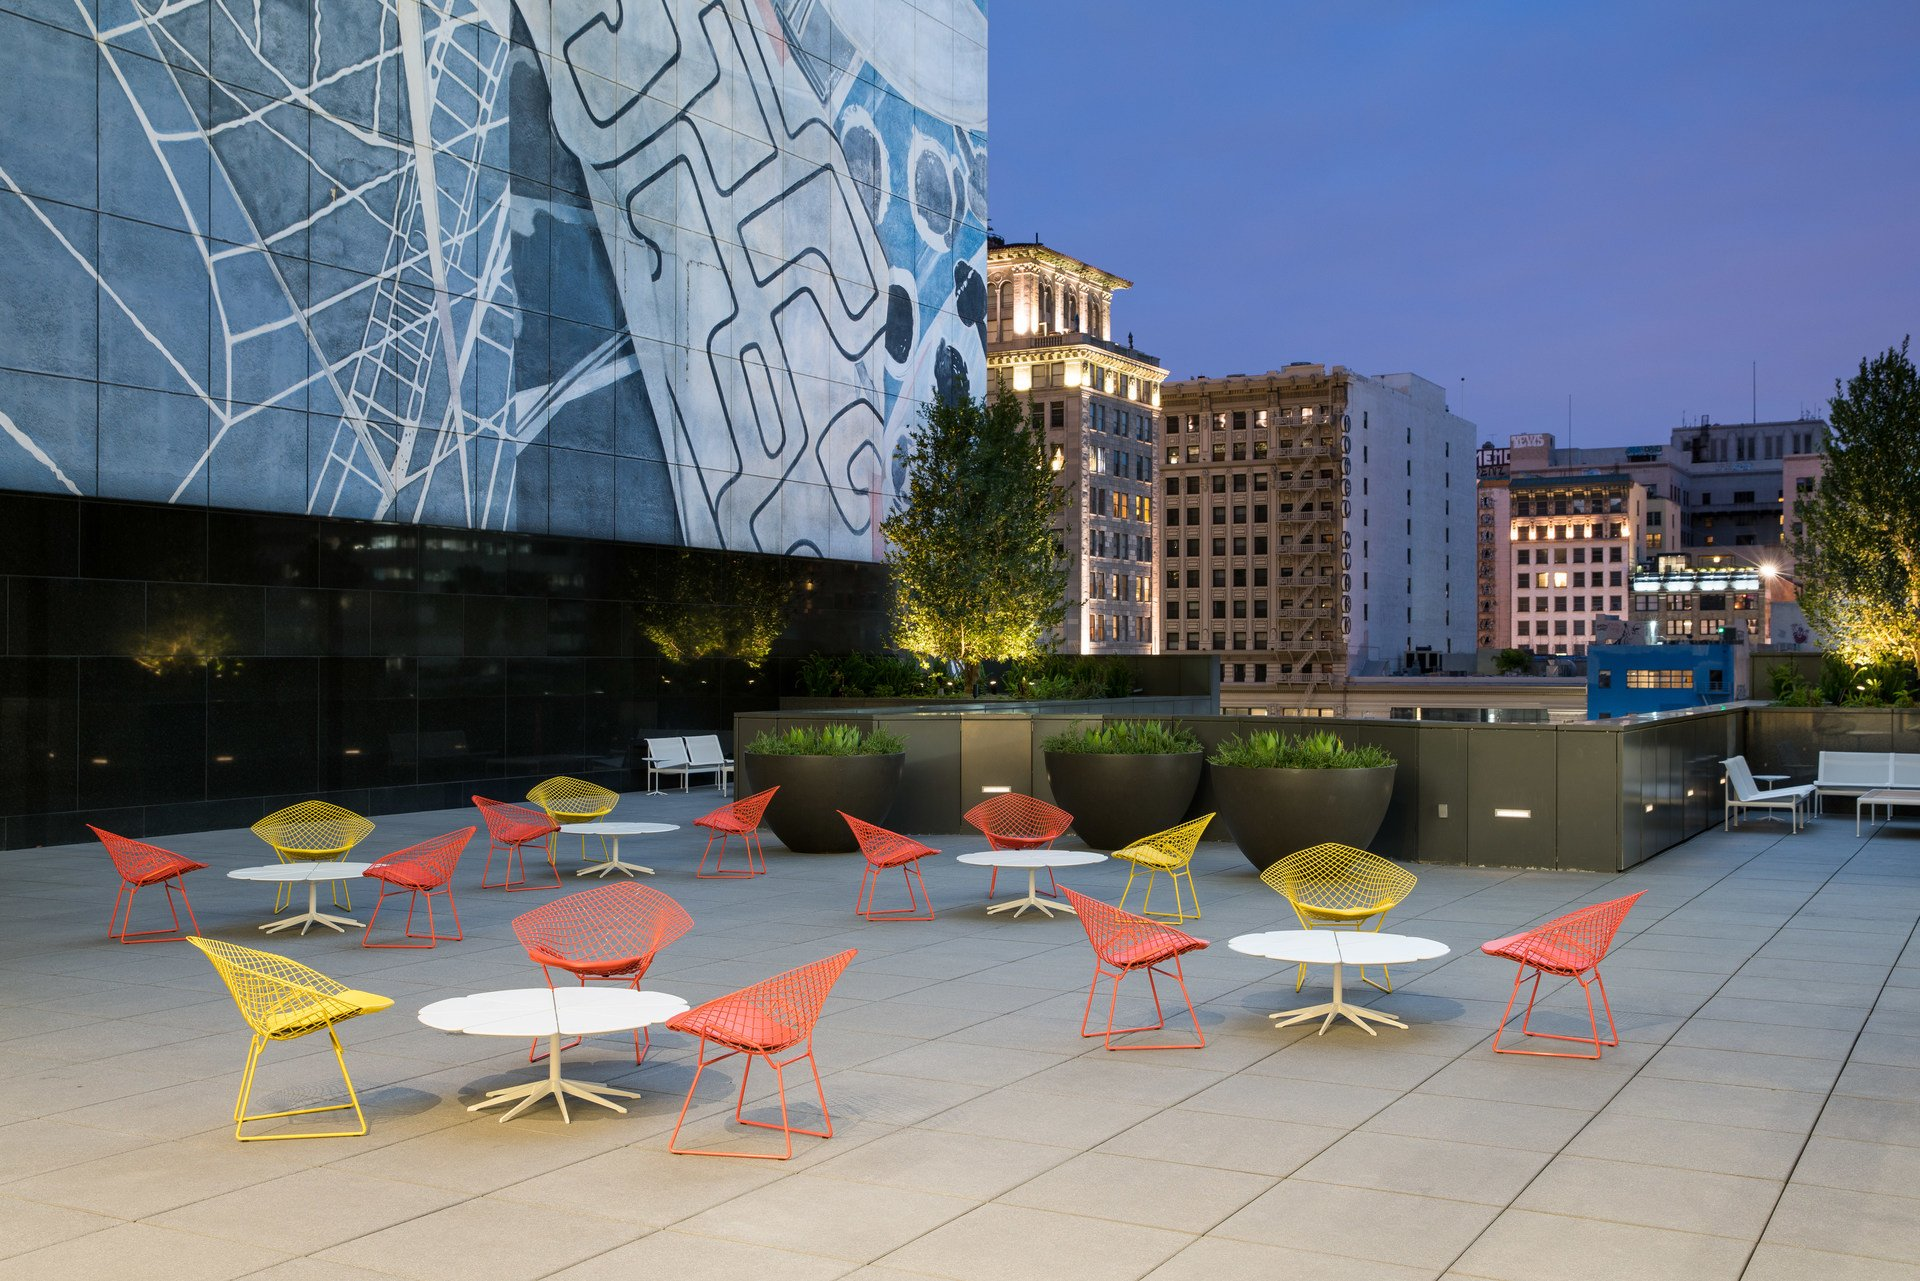 Outdoor seating area with red and yellow chairs at night. There is a mural on a building in the background.